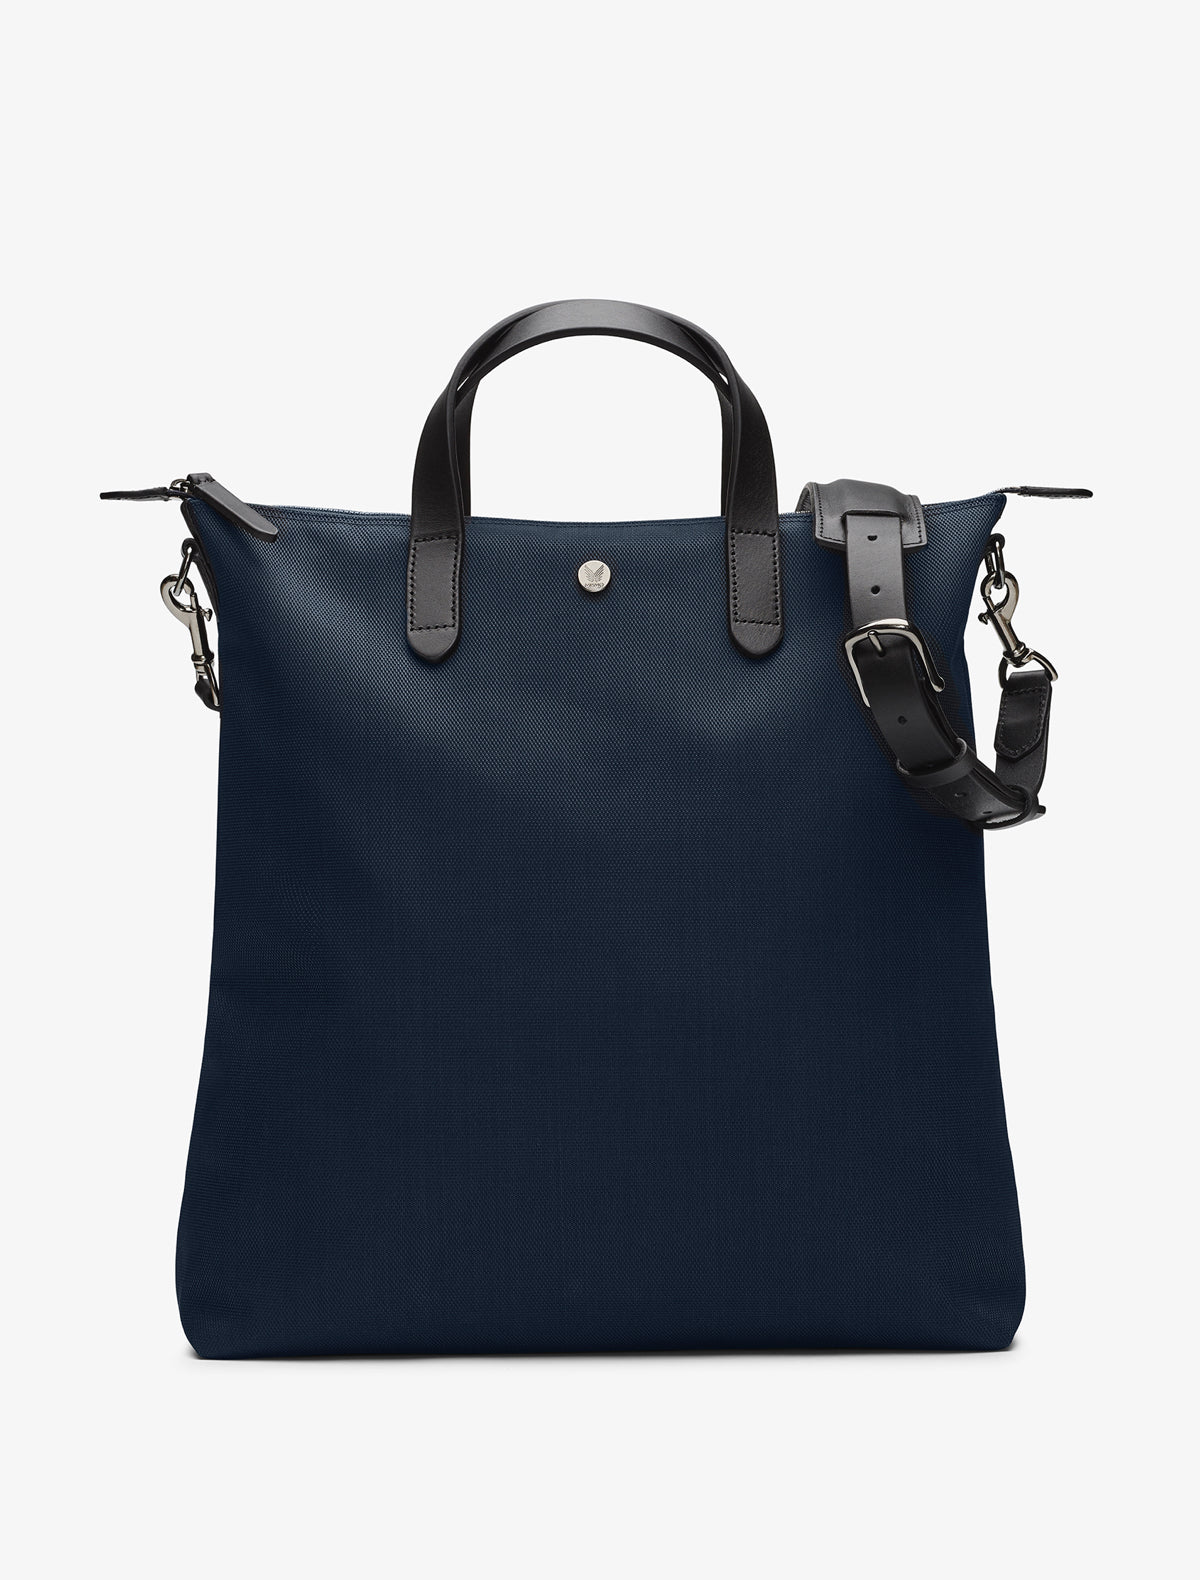 M/S Shopper – Deep blue/Black description image